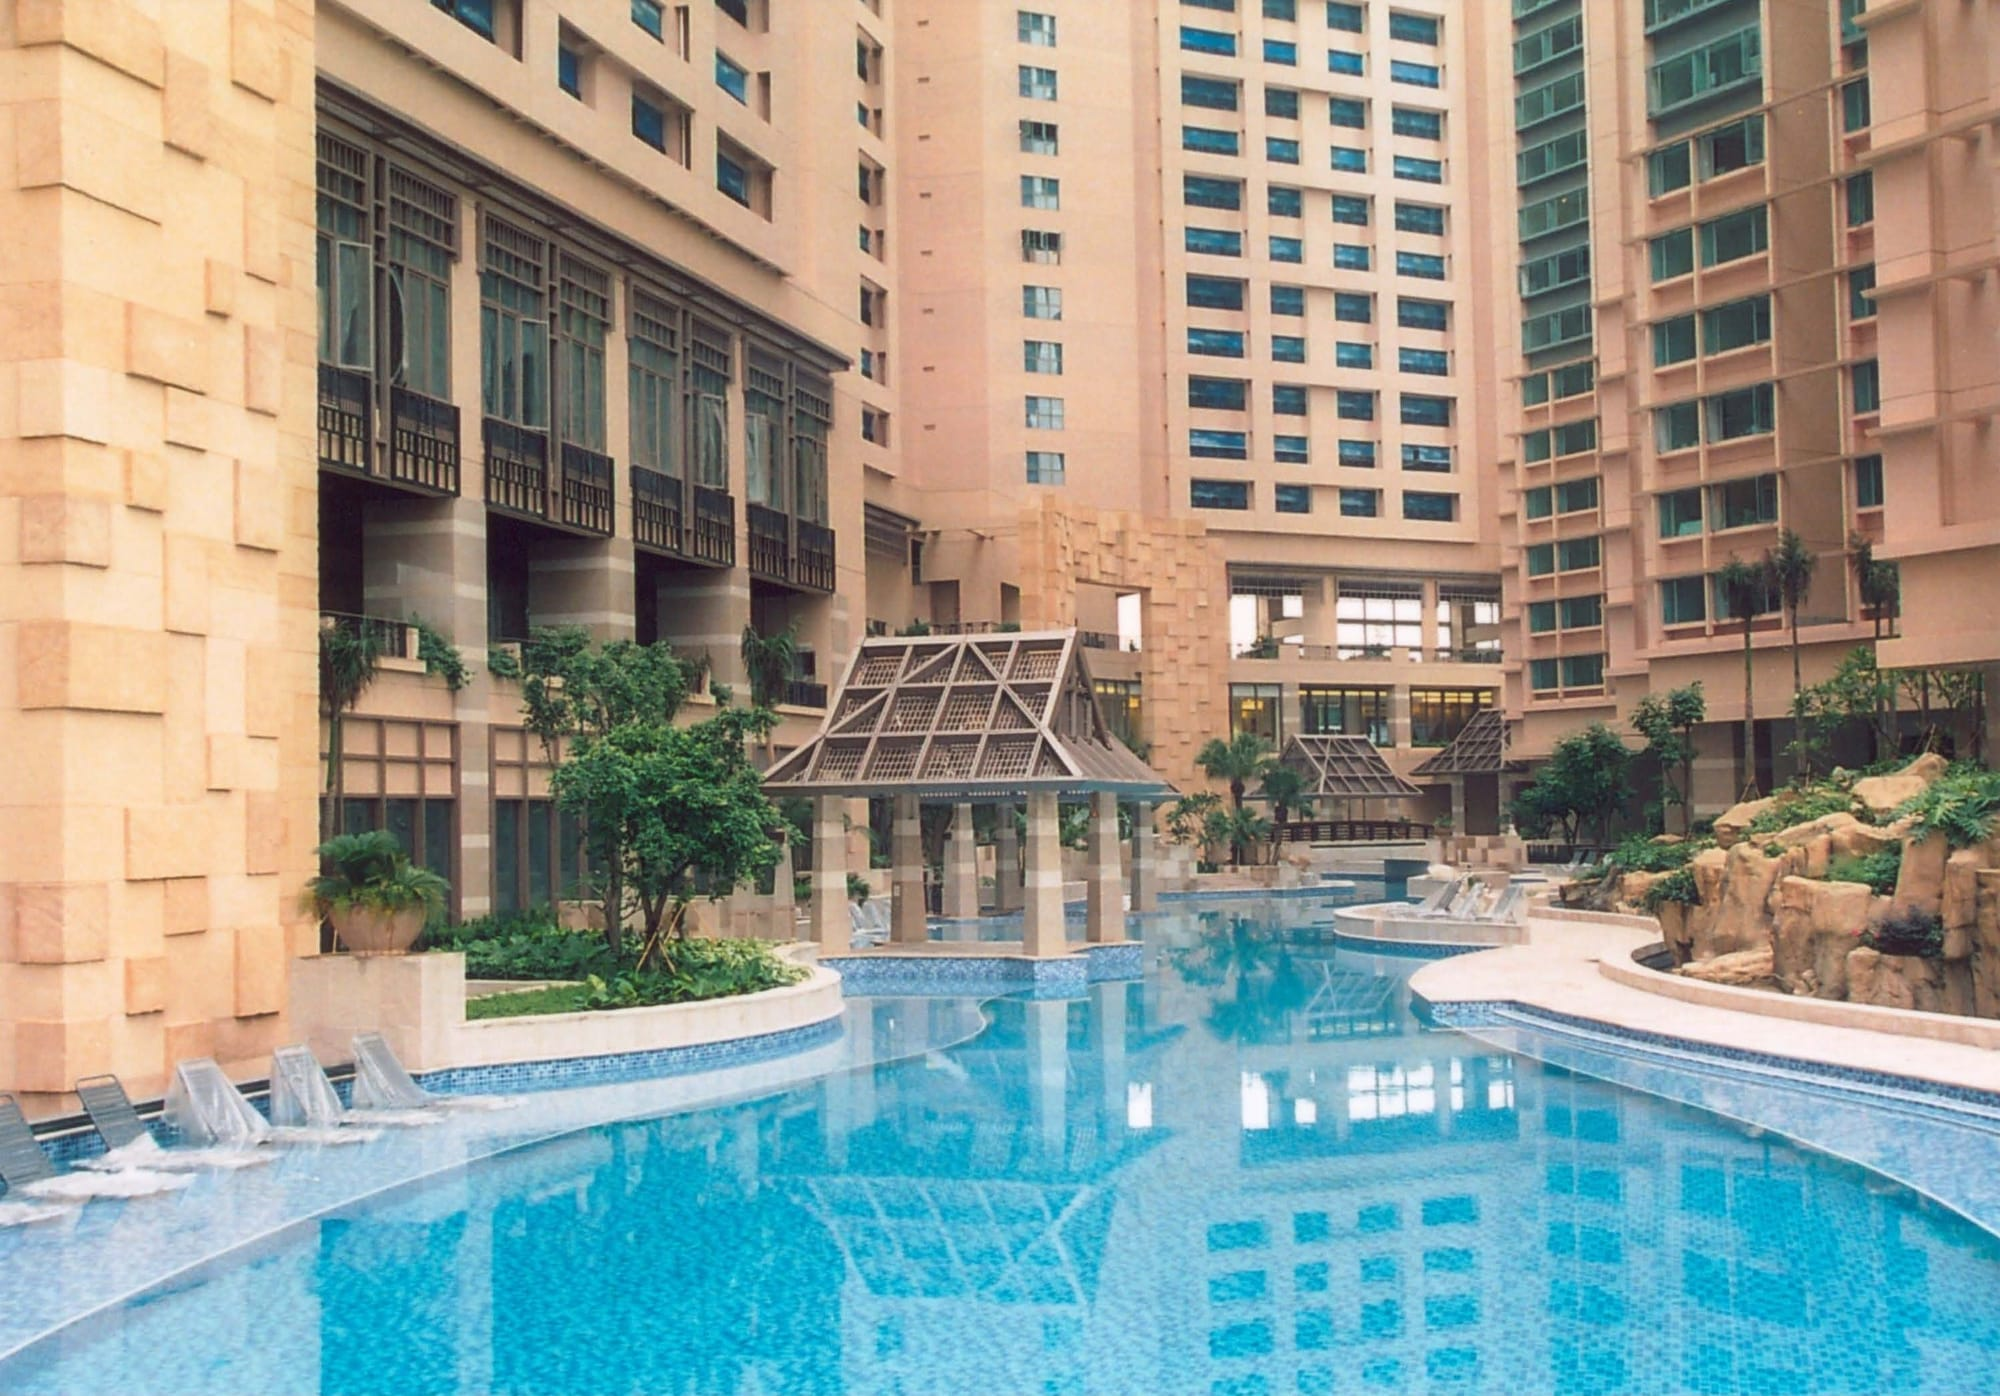 Winland 800 Hotel (Formerly Mexan Harbour Hotel), Kwai Tsing